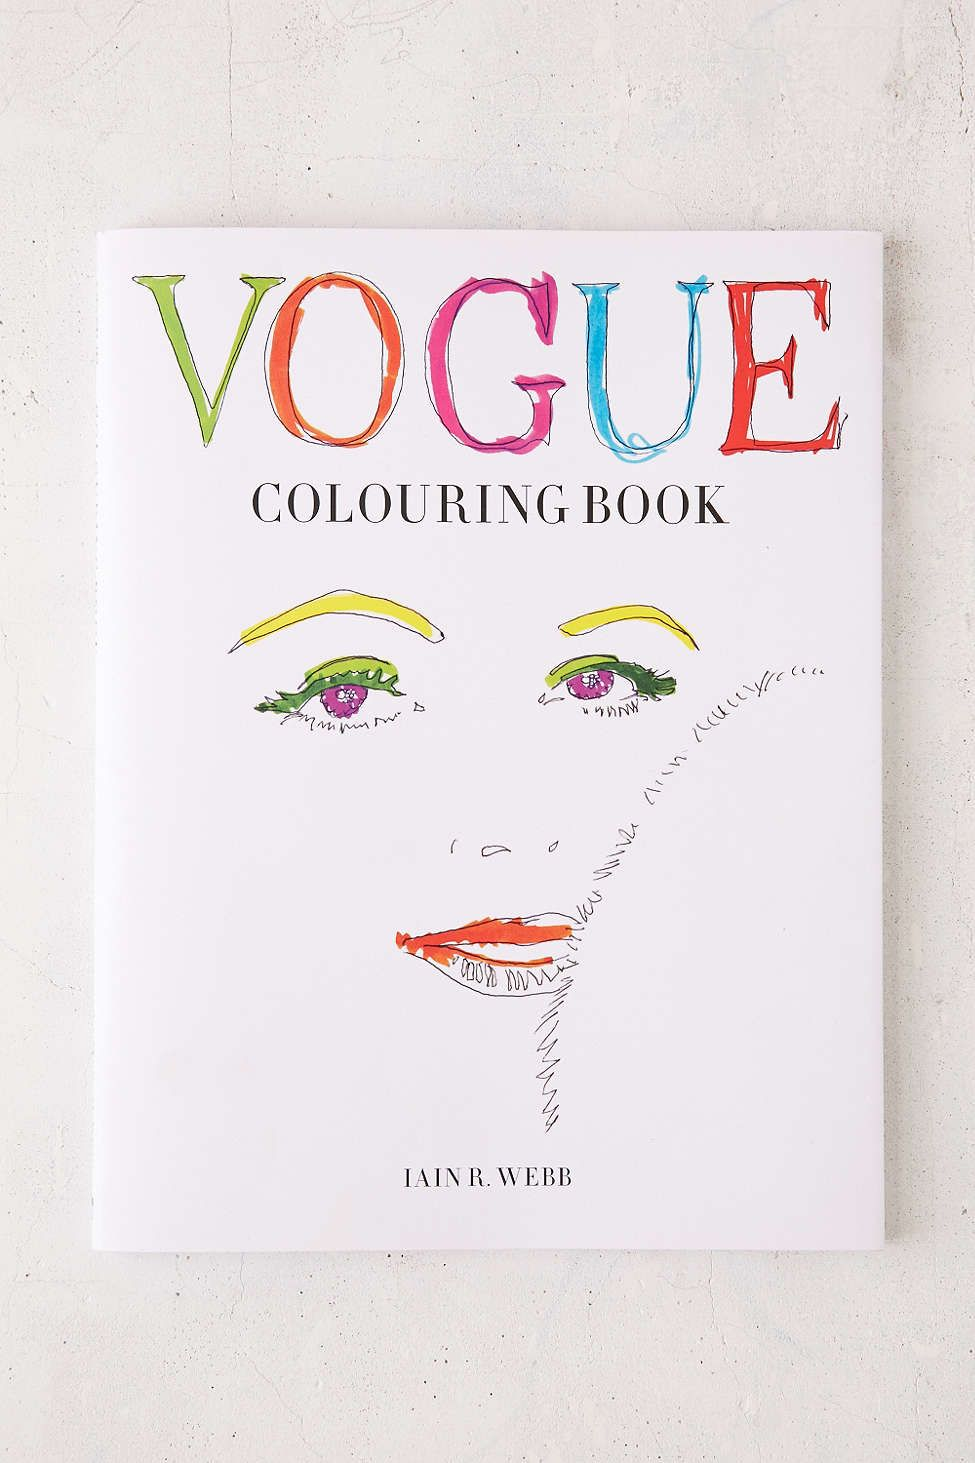 Vogue Coloring Book By Iain R Webb Urban Outfitters Fashion Coloring Book Coloring Books Books